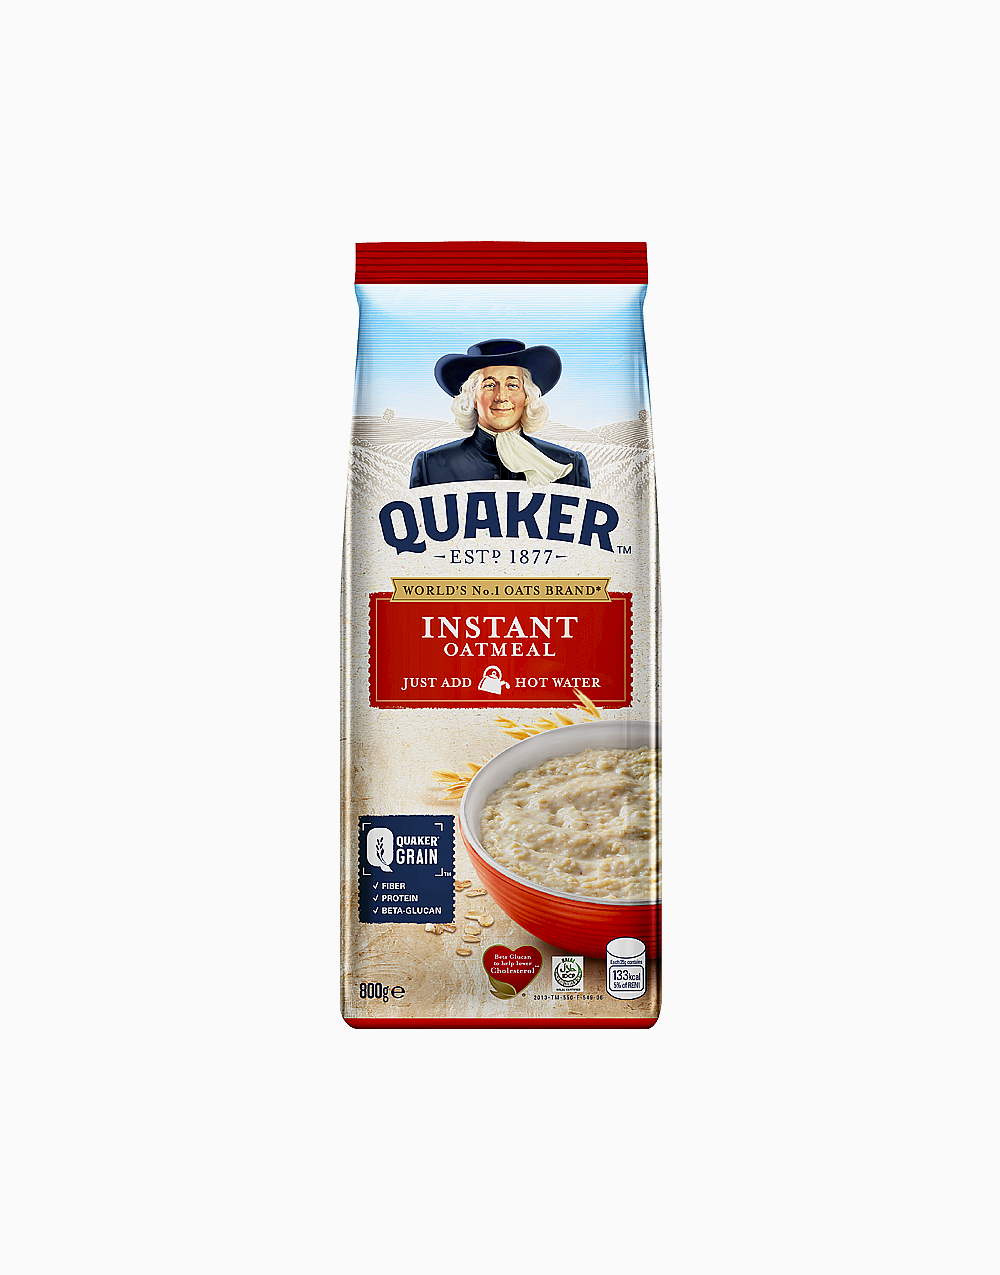 Instant Oatmeal (800g) by Quaker